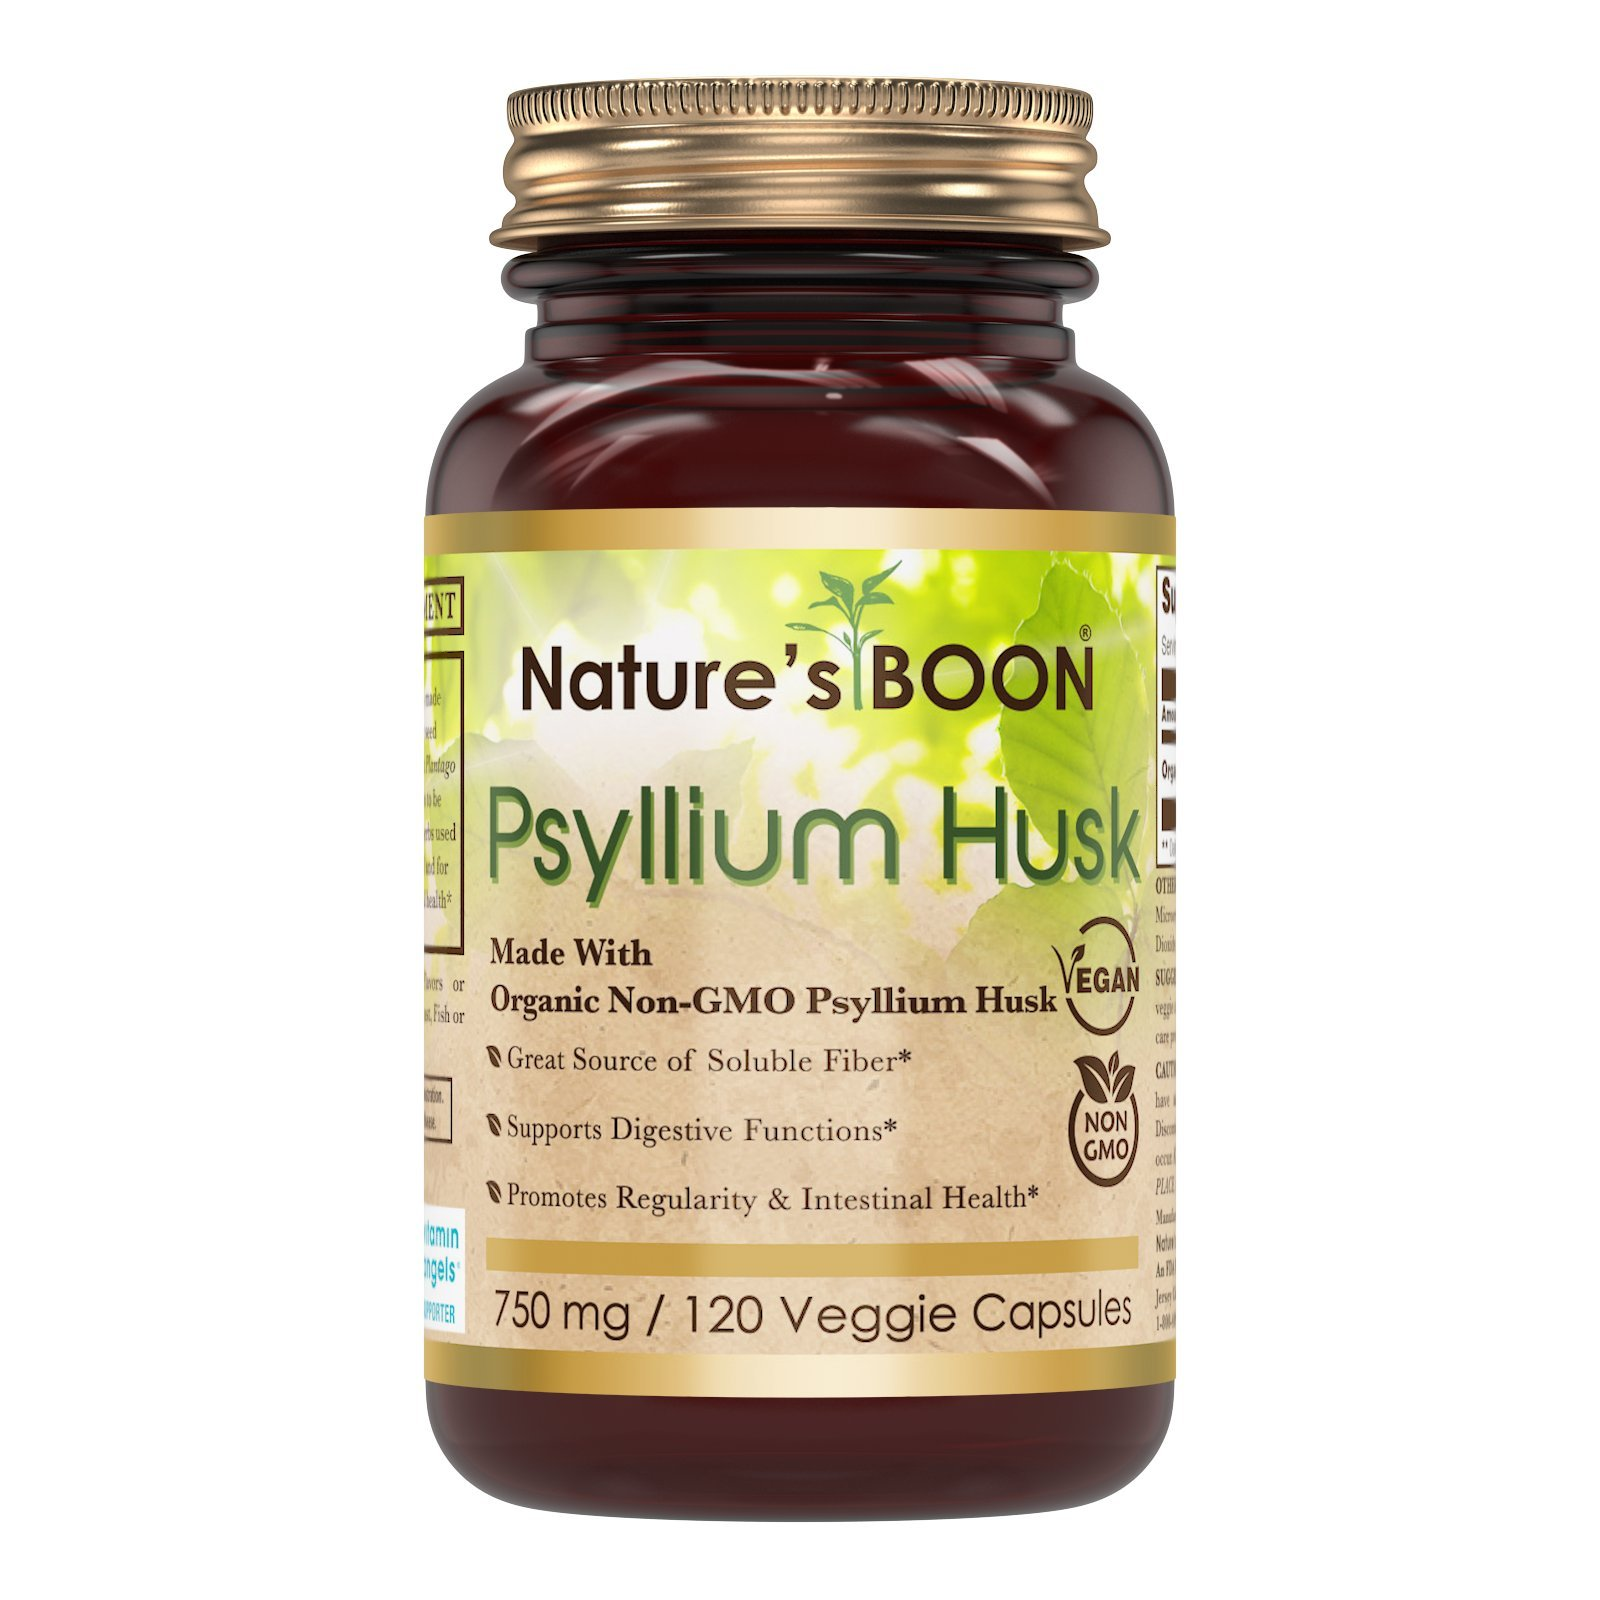 Nature's Boon Premium Quality Organic Psyllium Husk 750 mg 120 Veggie Capsules(glass bottle) -Great Source of Soluble Fiber -Support Digestive Function -Support Regularity & Intestinal Health